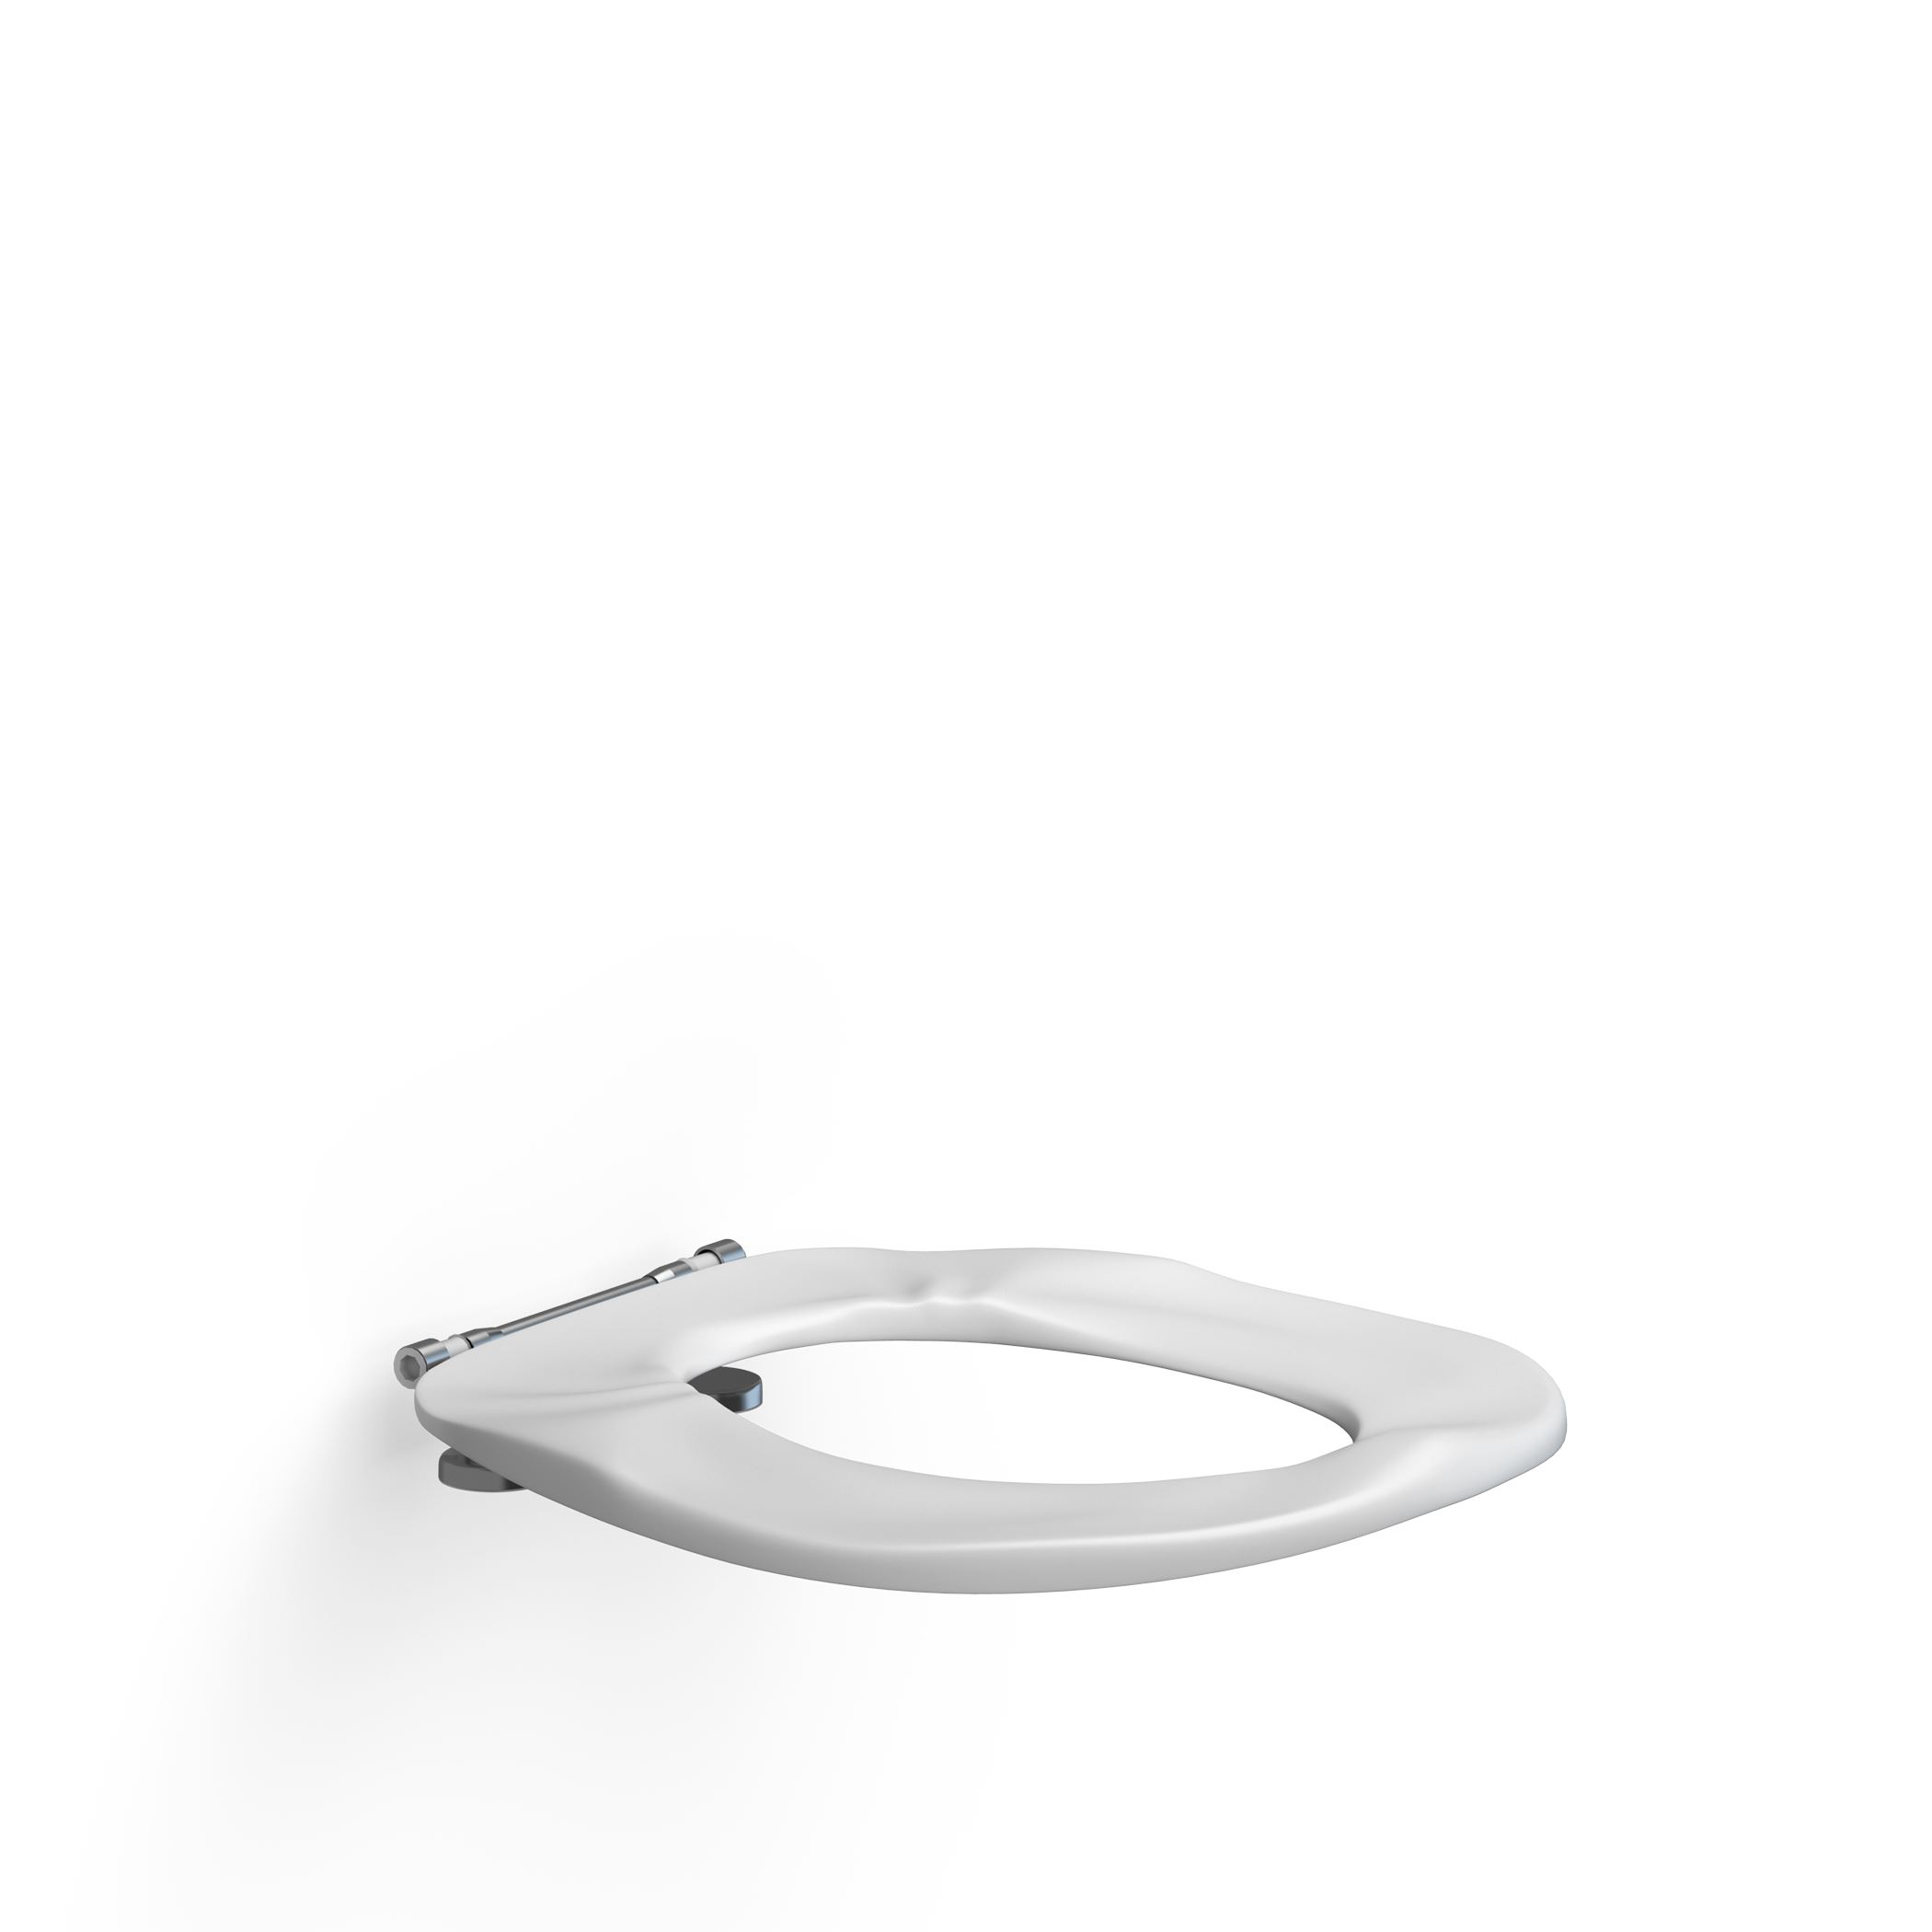 Toilet seat Ergosit without cover